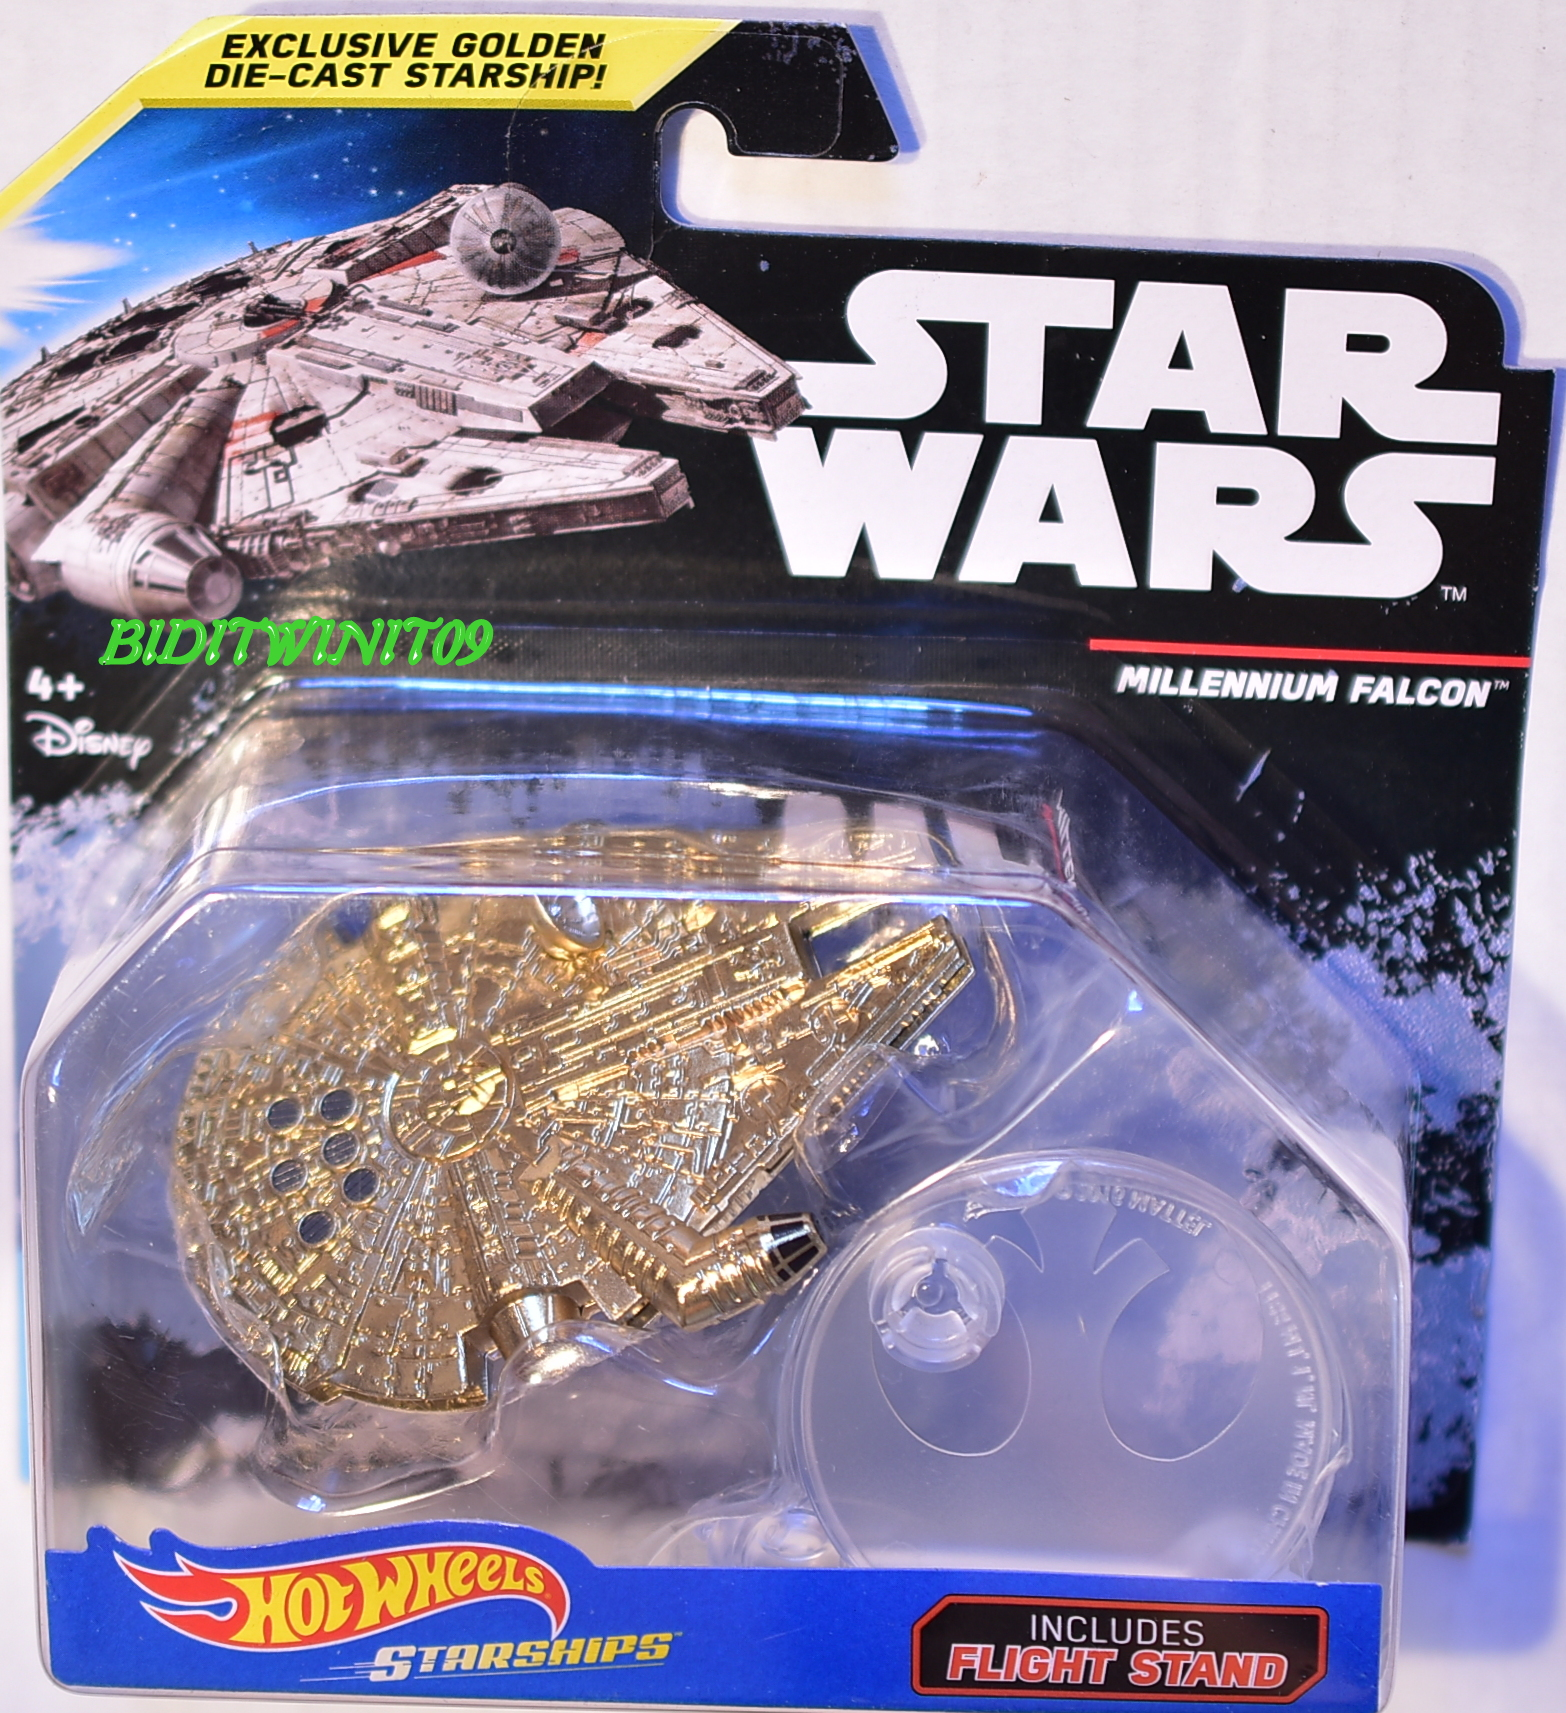 HOT WHEELS 2017 STAR WARS MILLENNIUM FALCON INCLUDES FLIGHT STAND STARSHIPS